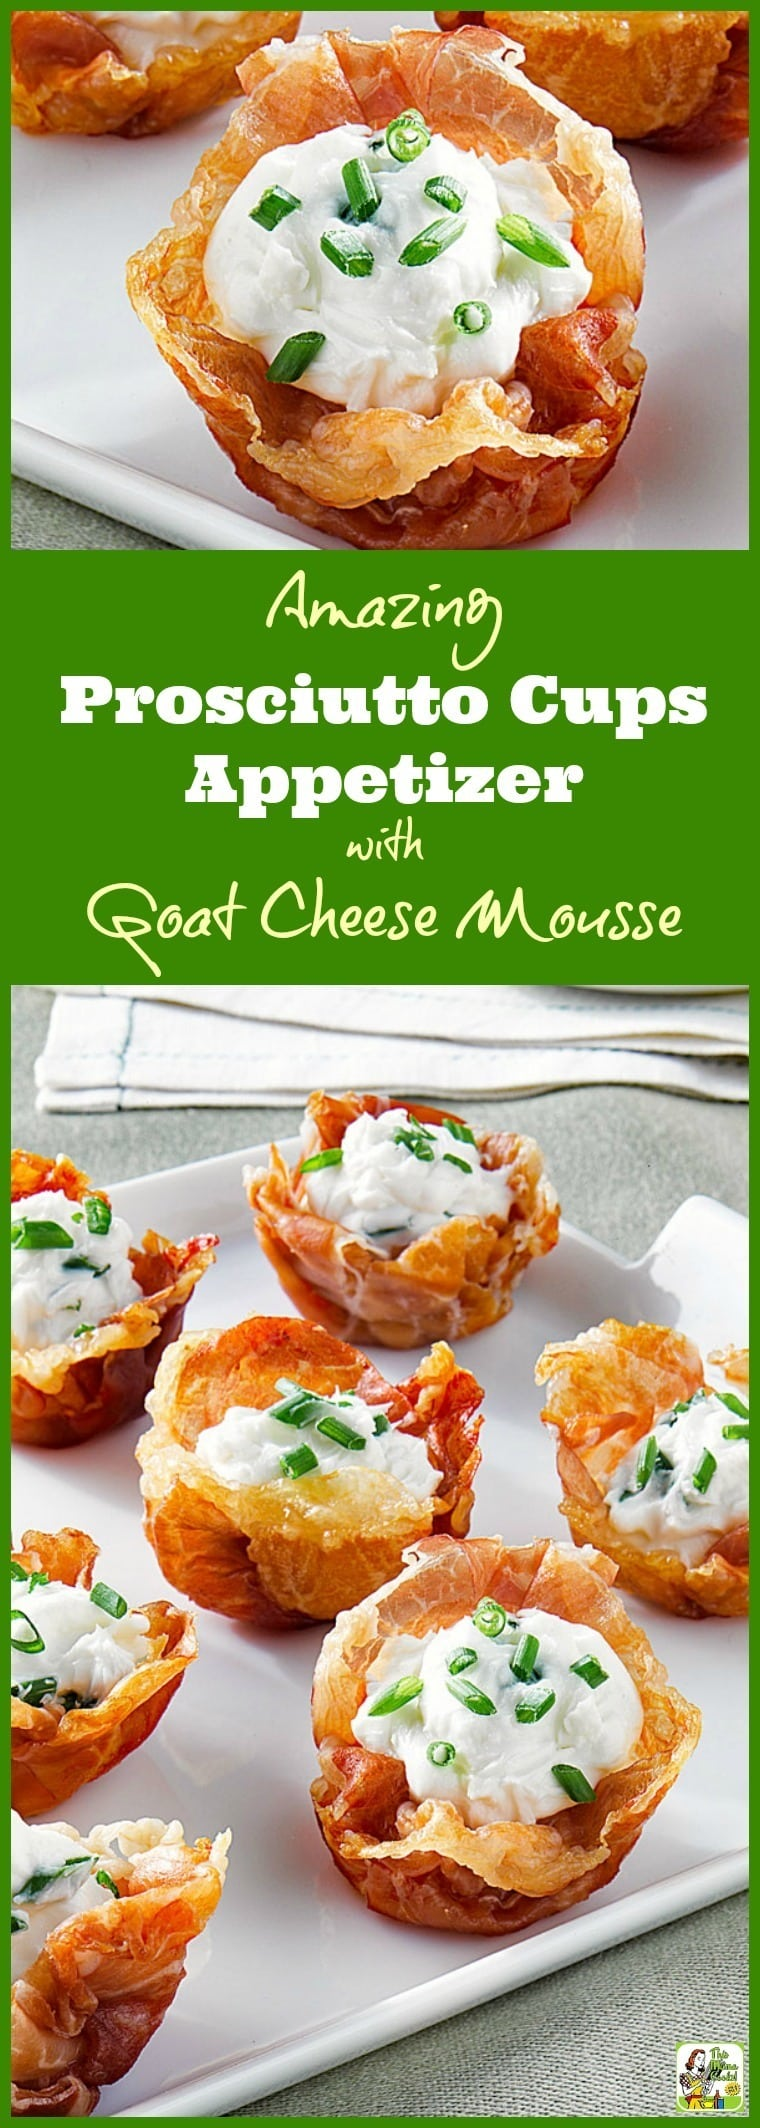 Try this Amazing Prosciutto Cups Appetizer with Goat Cheese Mousse at your party. Click to get this easy goat cheese appetizer recipe. This appetizer is gluten free since it uses prosciutto to form the cups, not pastry or phyllo dough. #appetizer #glutenfree #goatcheese #prosciutto #partyfood #entertaining